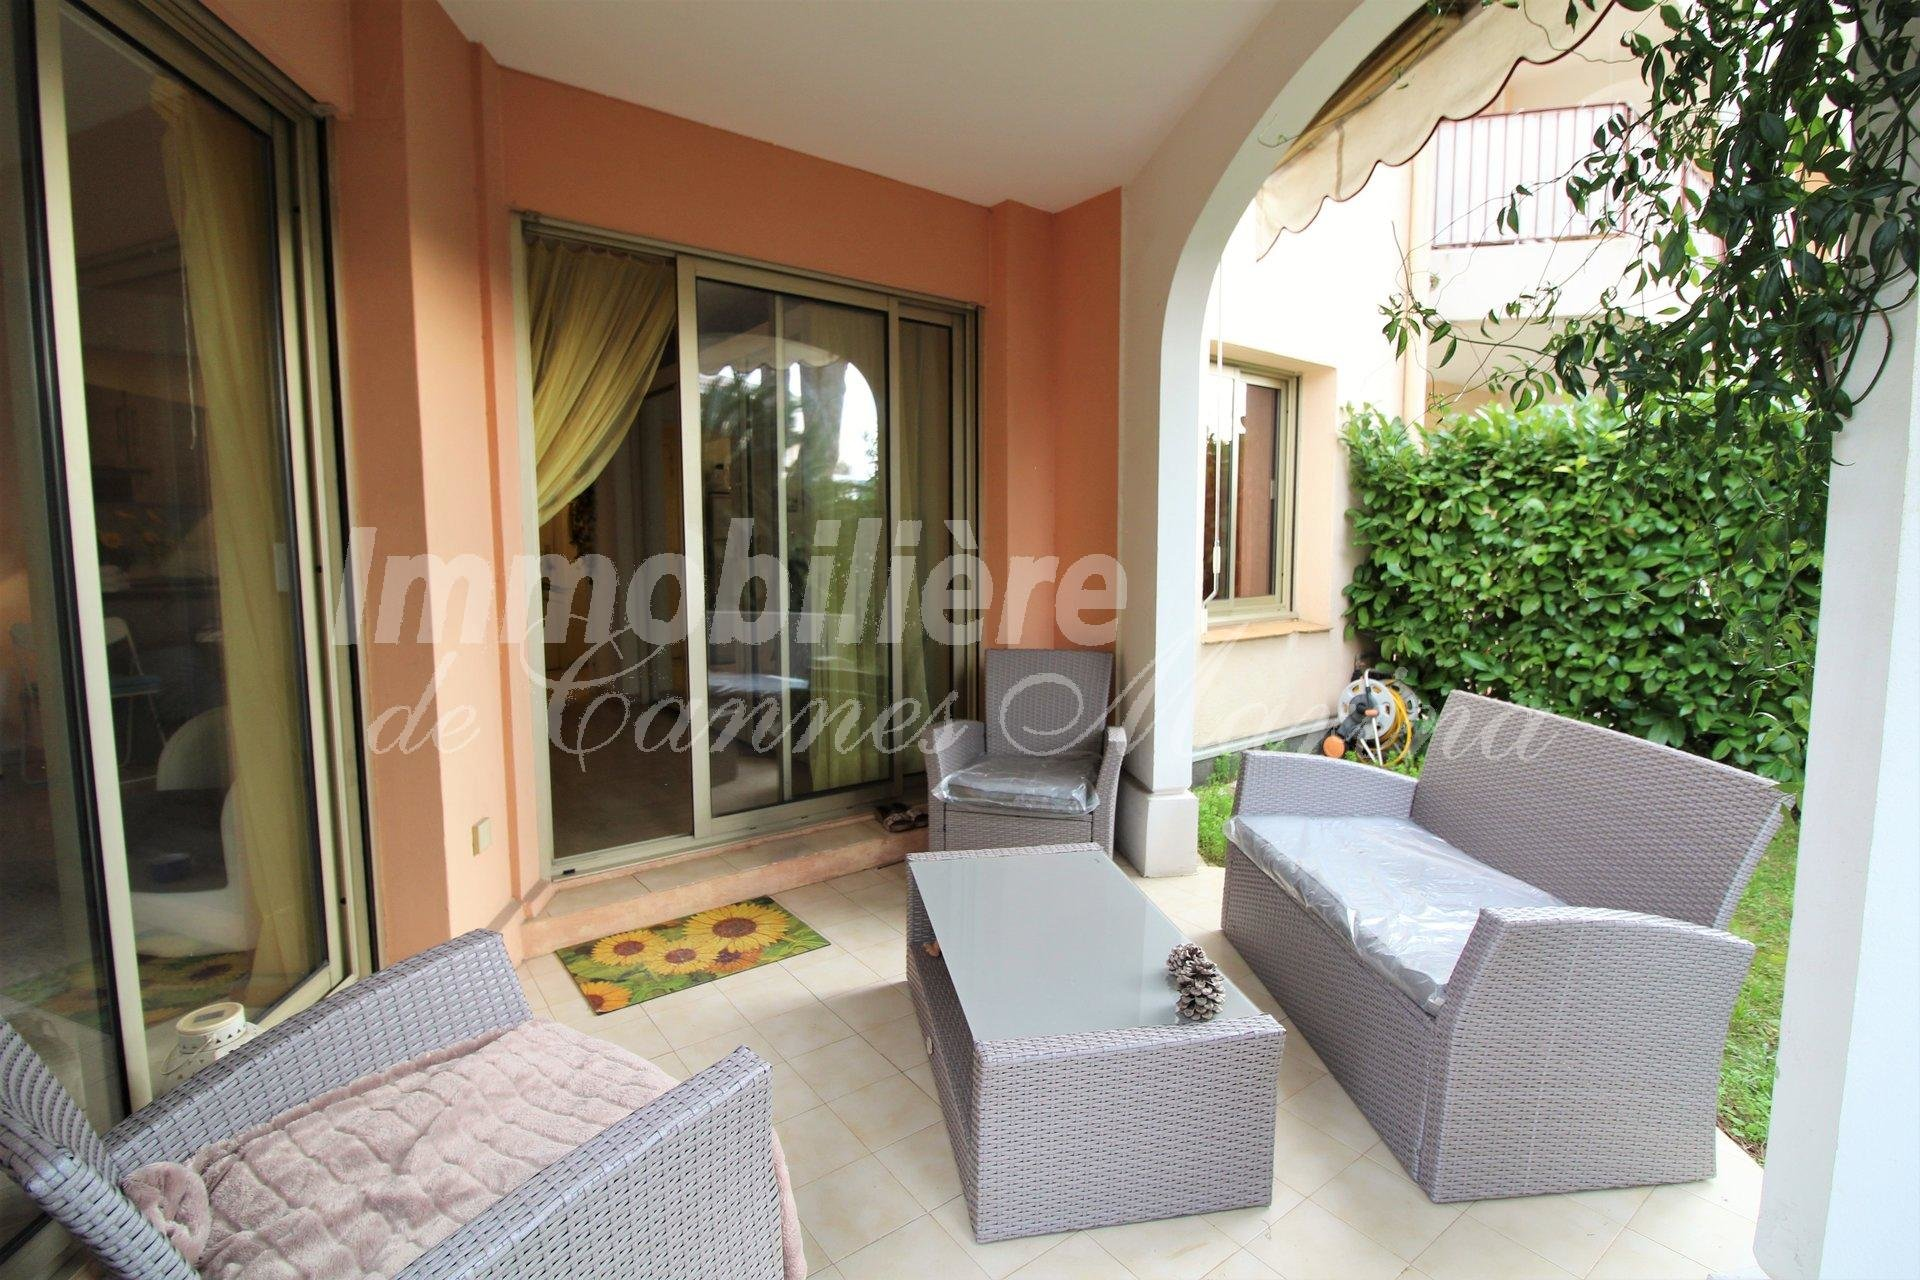 Sold rented: beautiful one bedroom apartment in a residence with swimming pool